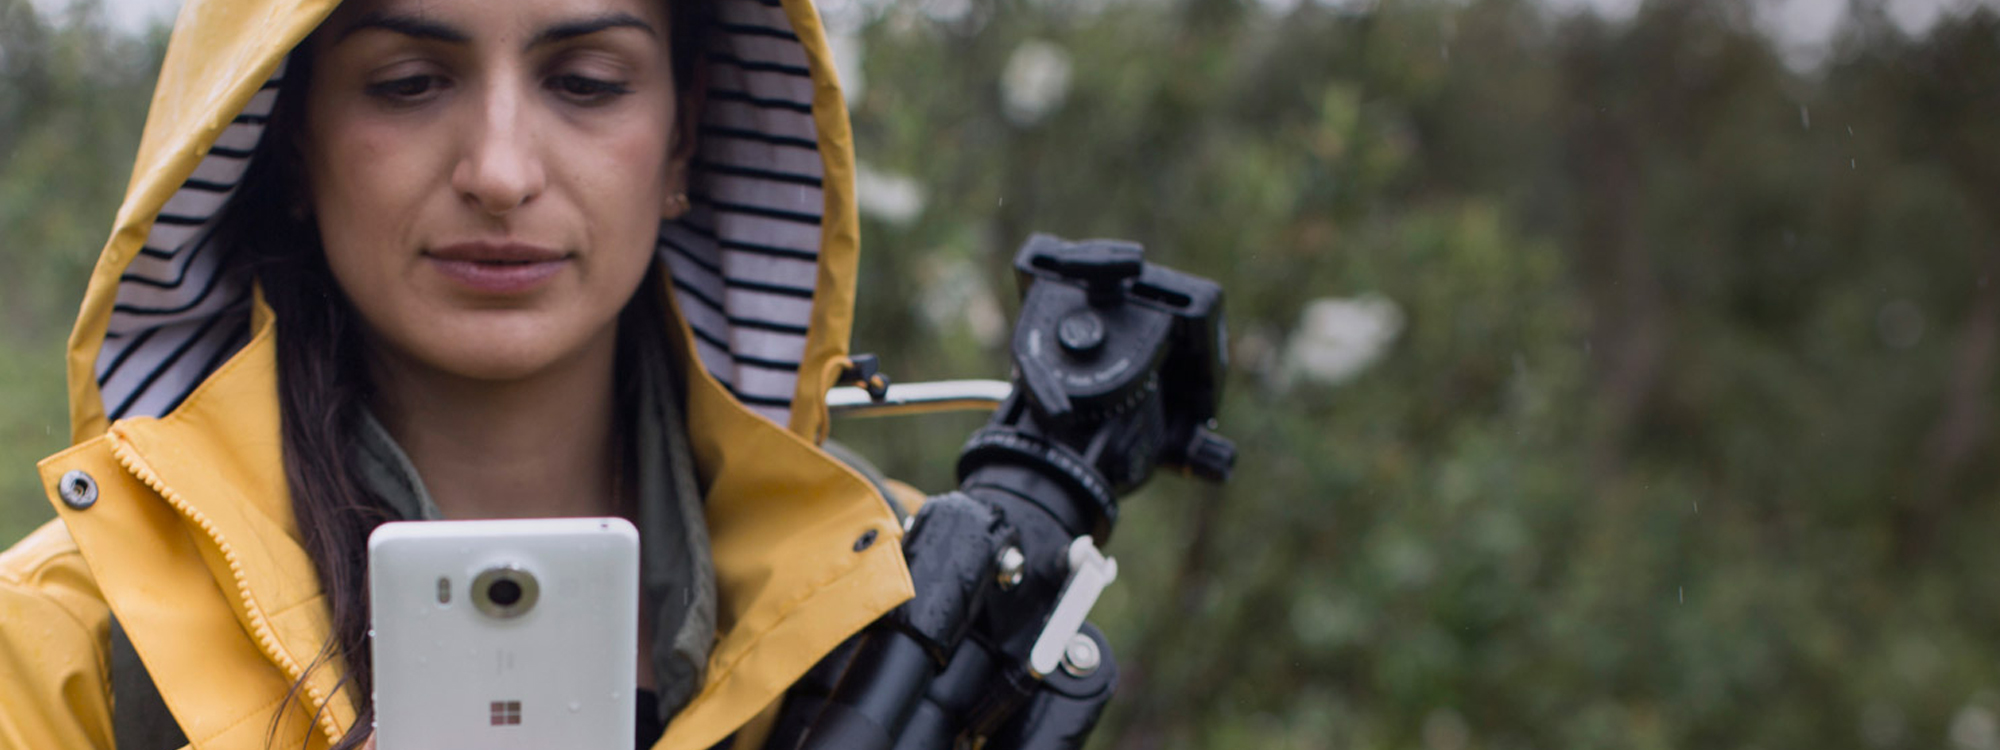 Woman wearing raincoat and carrying camera tripod in a wooded area looking at the screen of her Lumia 950